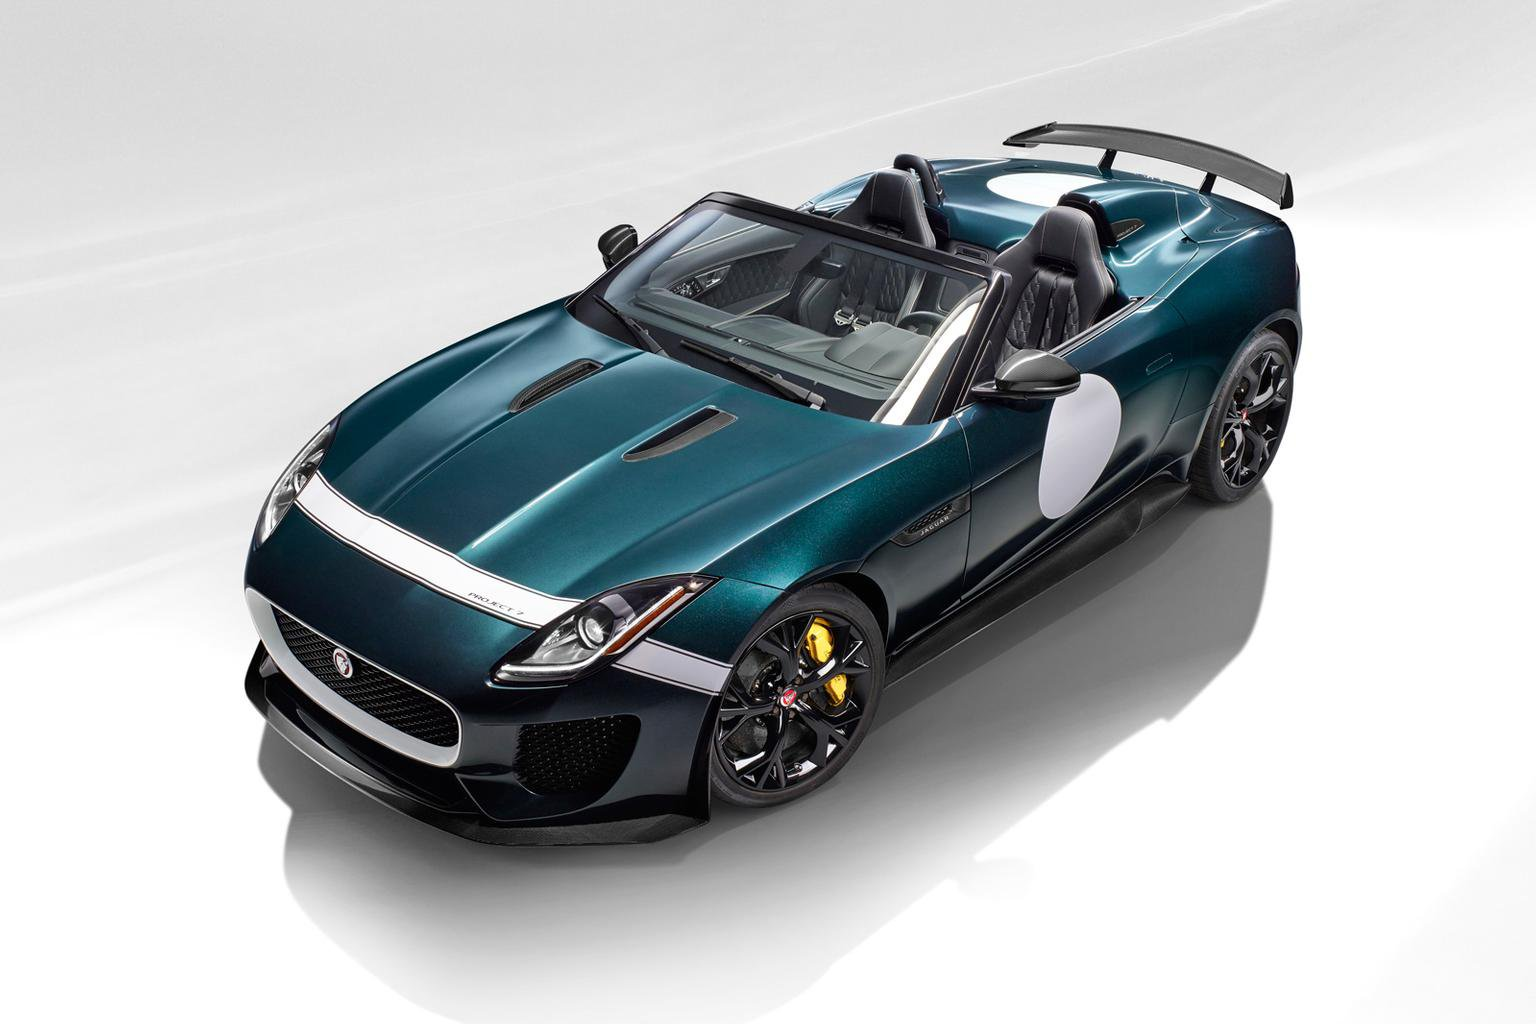 Jaguar F-type Project 7 confirmed